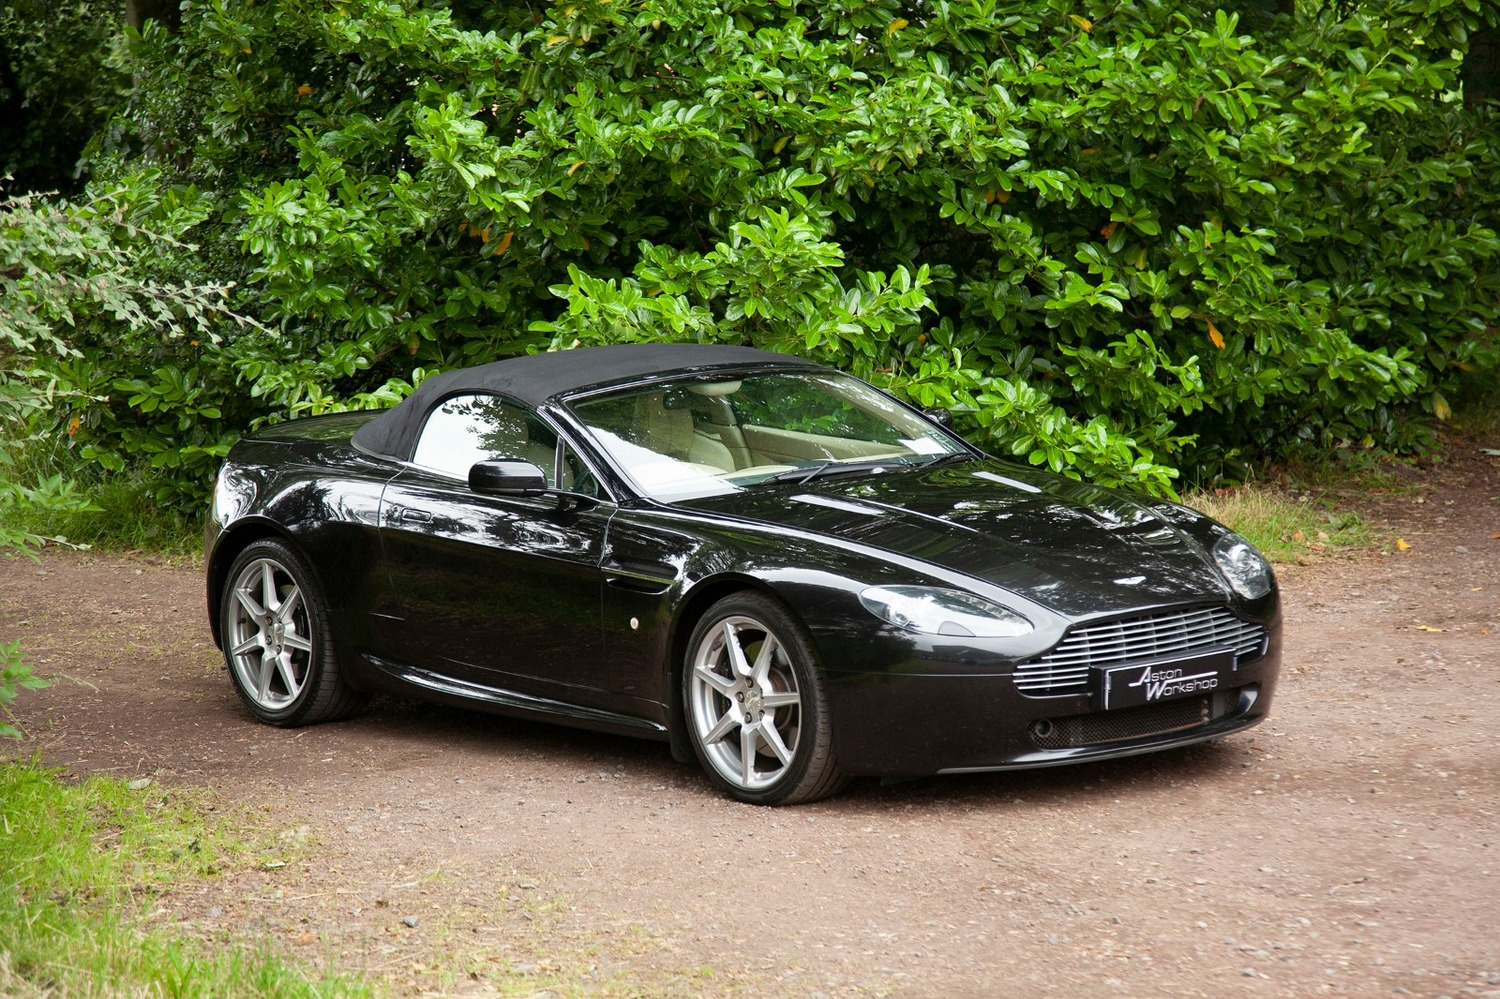 2007 Aston Martin V8 Vantage 4 3 Roadster Manual Aw190719